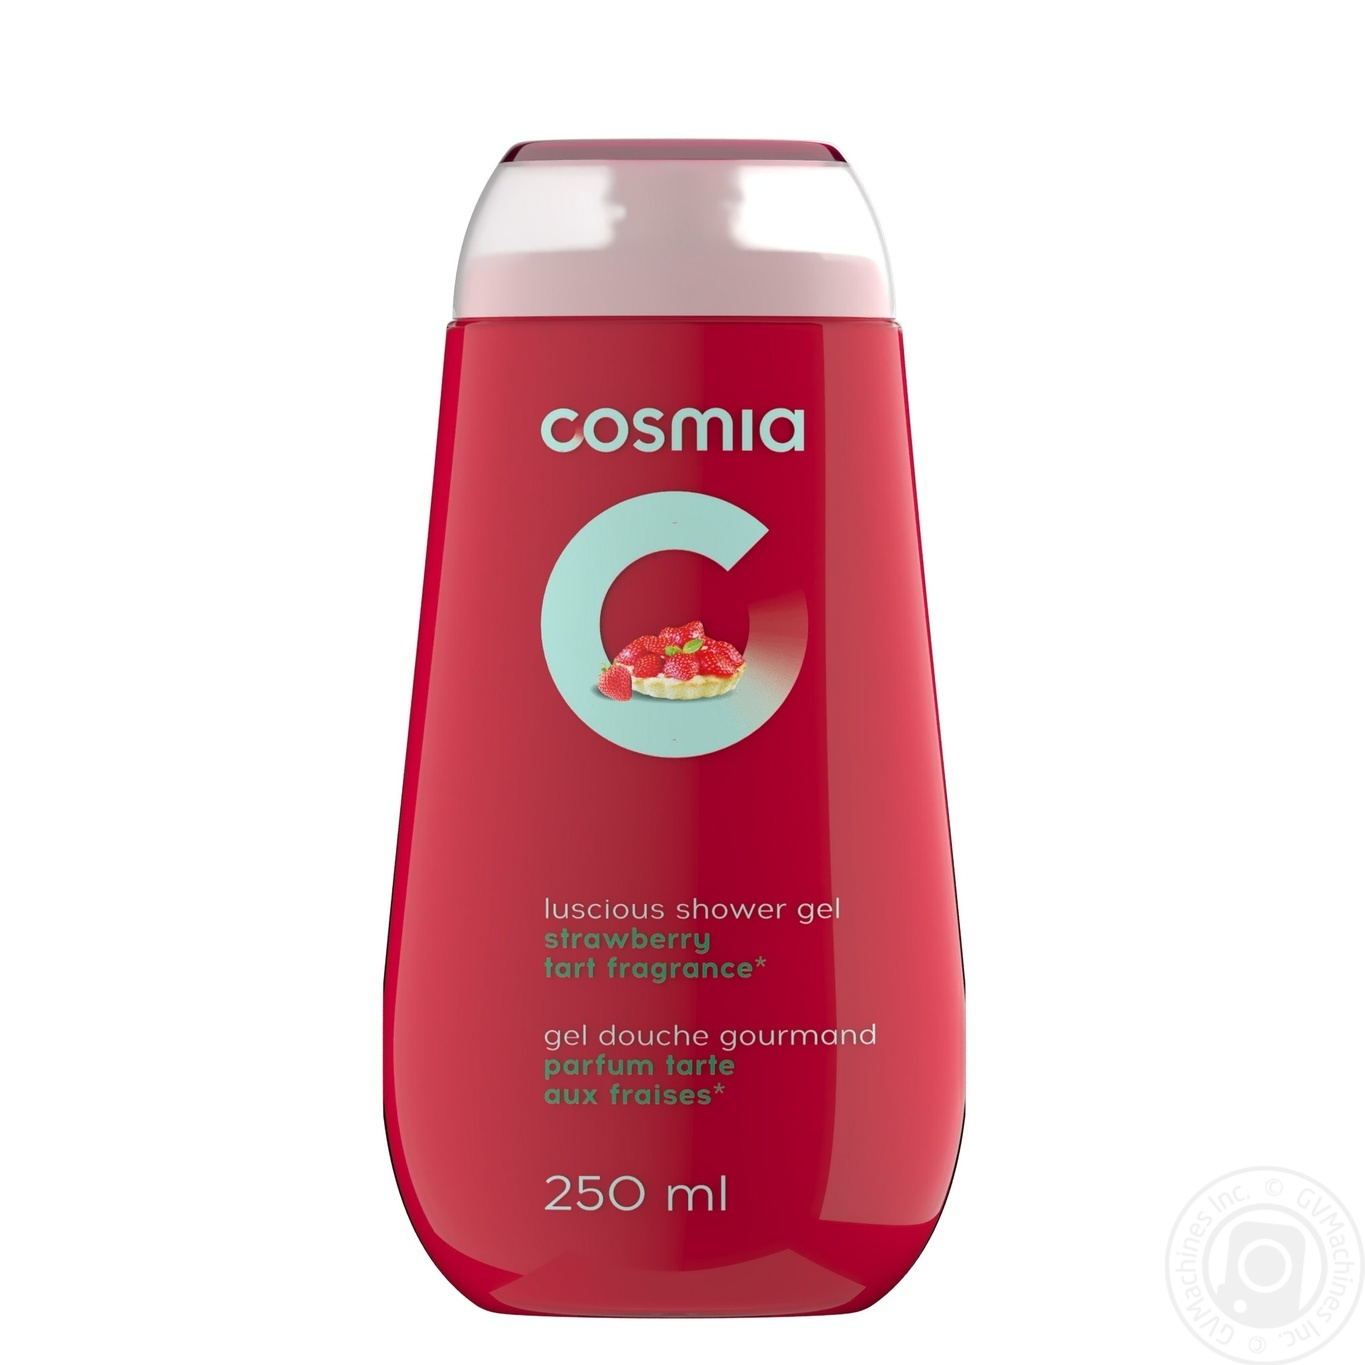 Gel Cosmia Auchan Strawberries With Cream For Shower 250ml